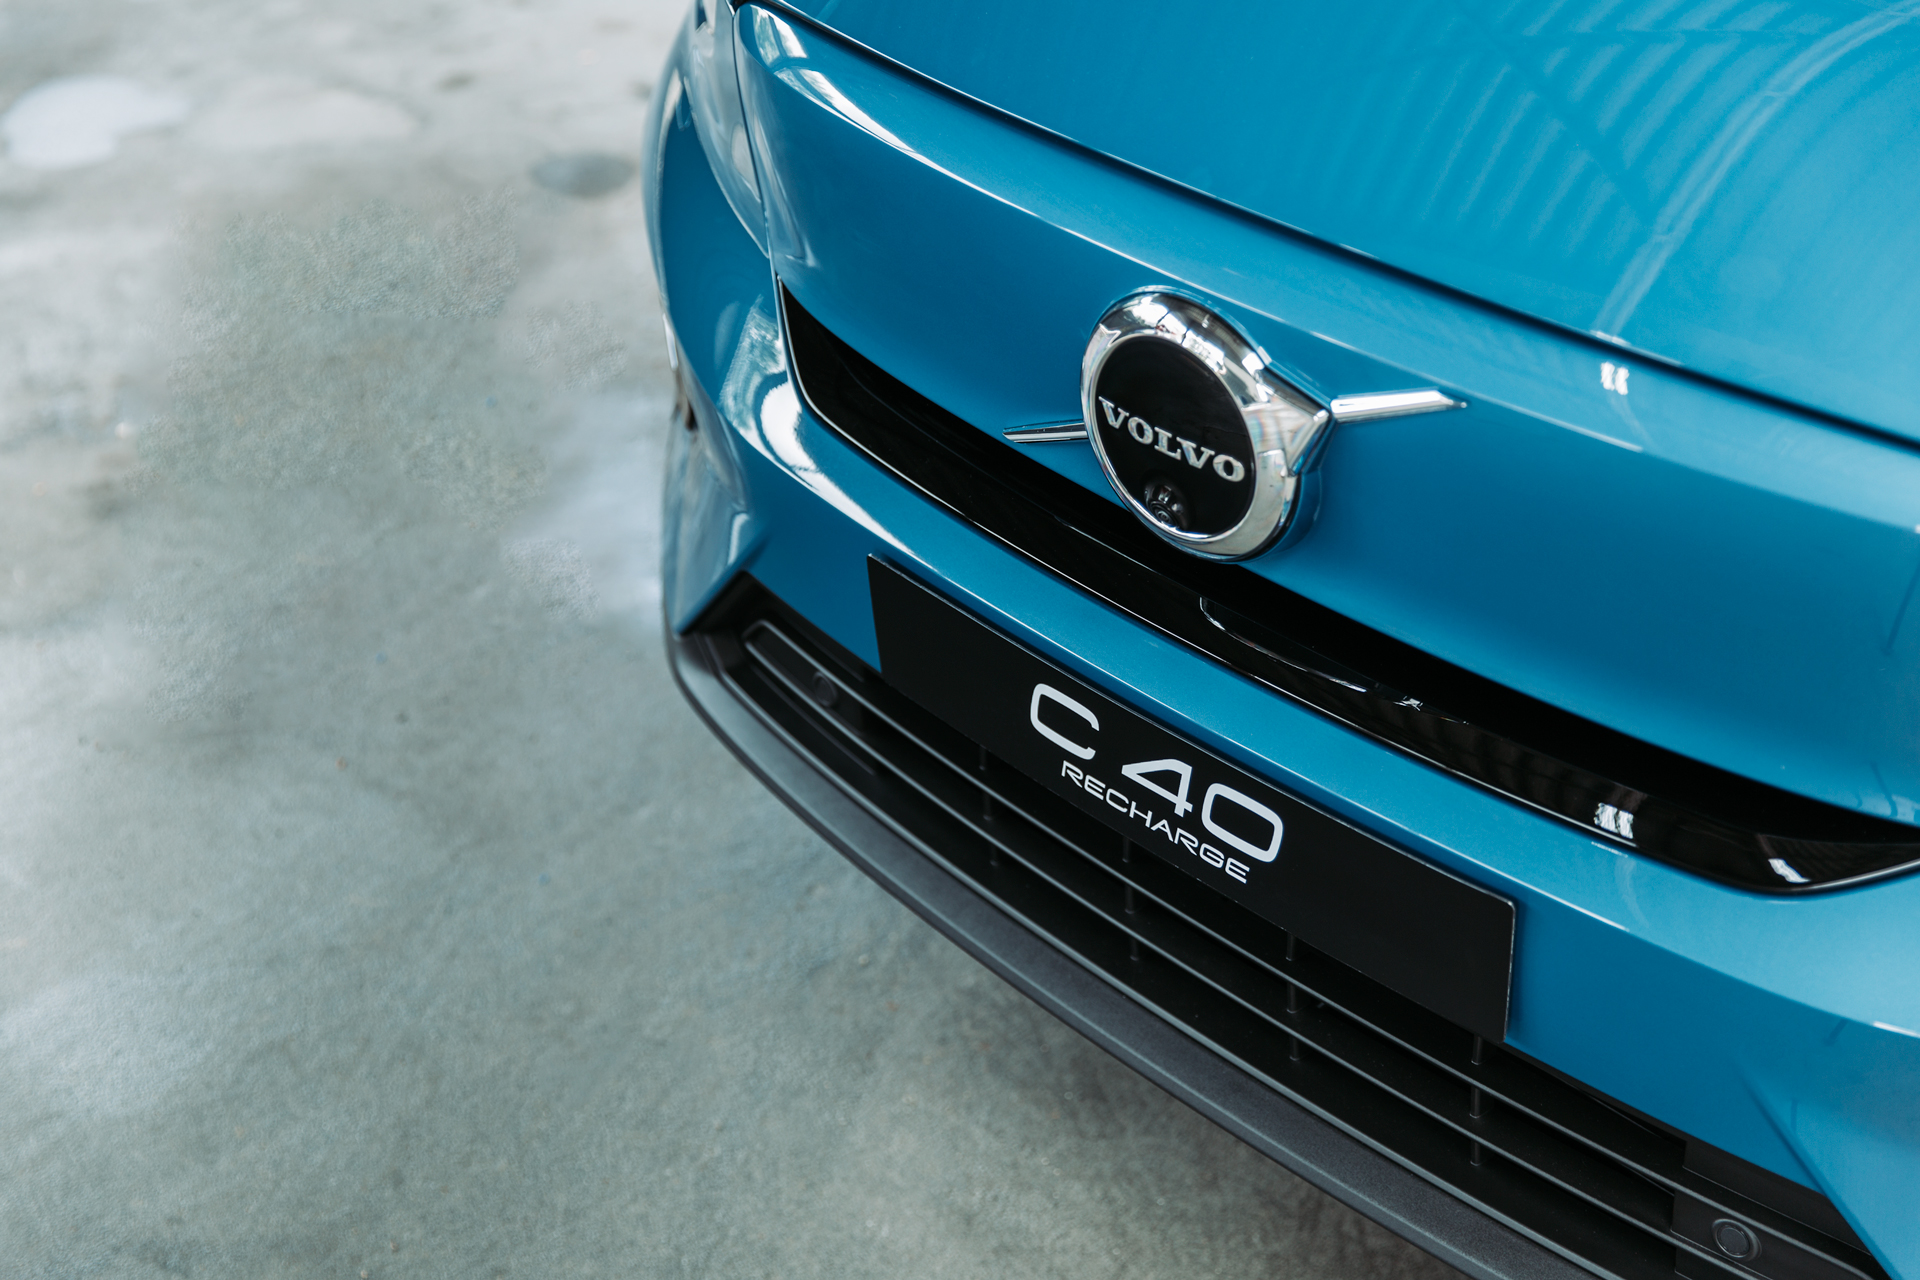 C40 Recharge Front